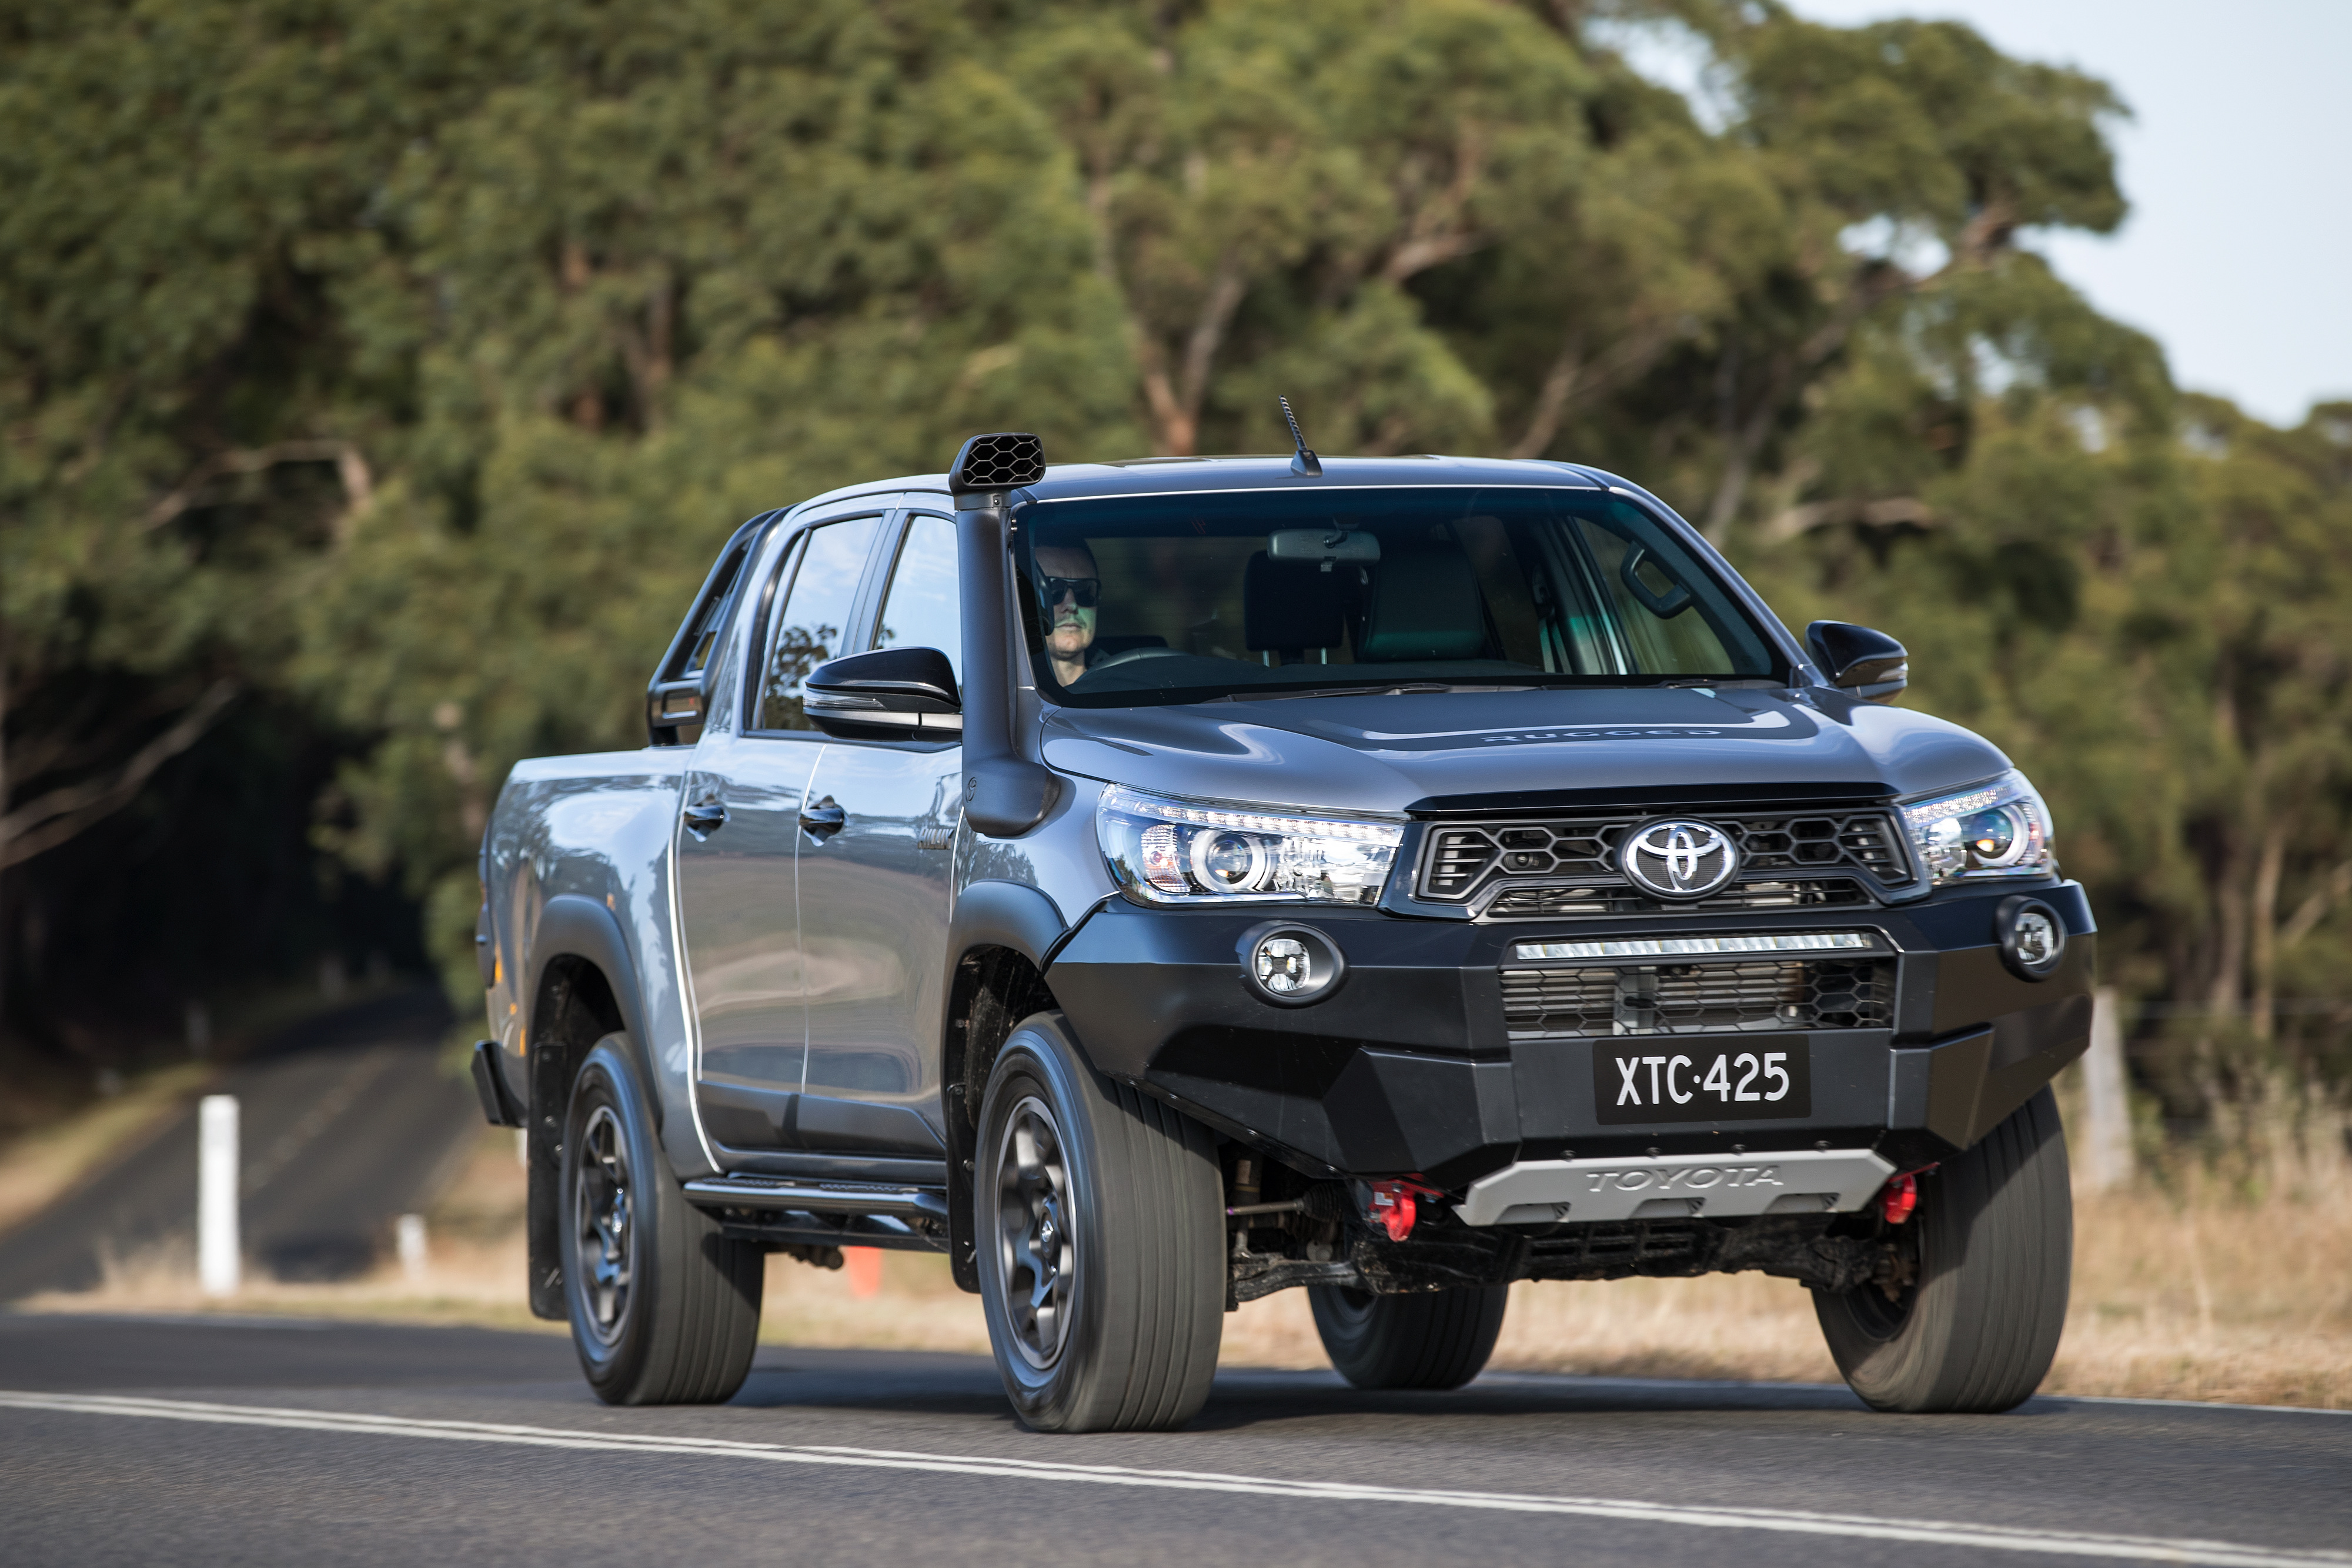 2018 Toyota HiLux Rugged X.